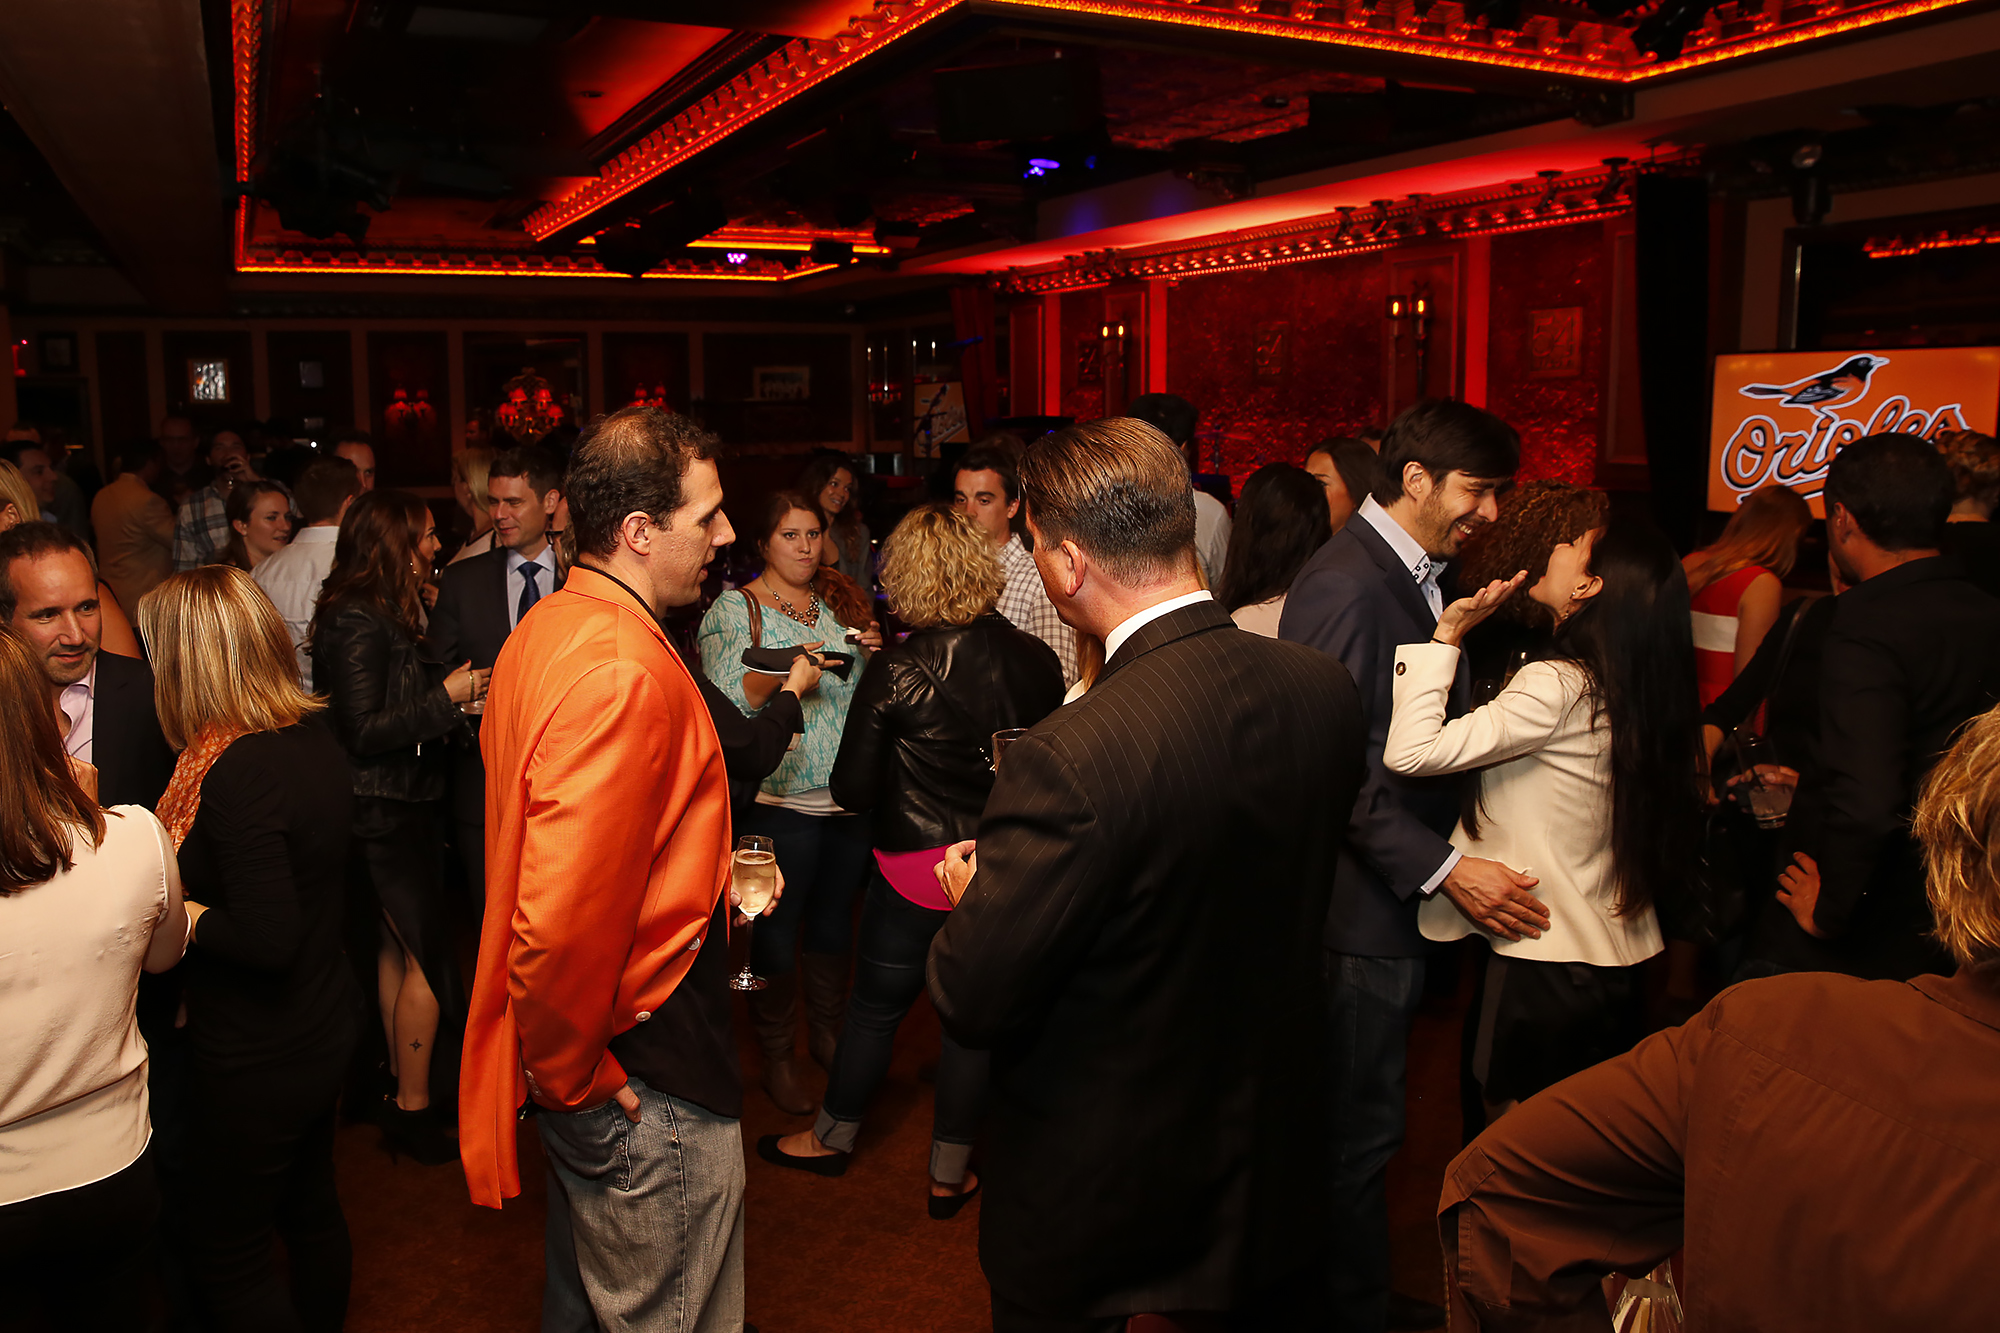 People mingle in the dining room at Baltimore Orioles event